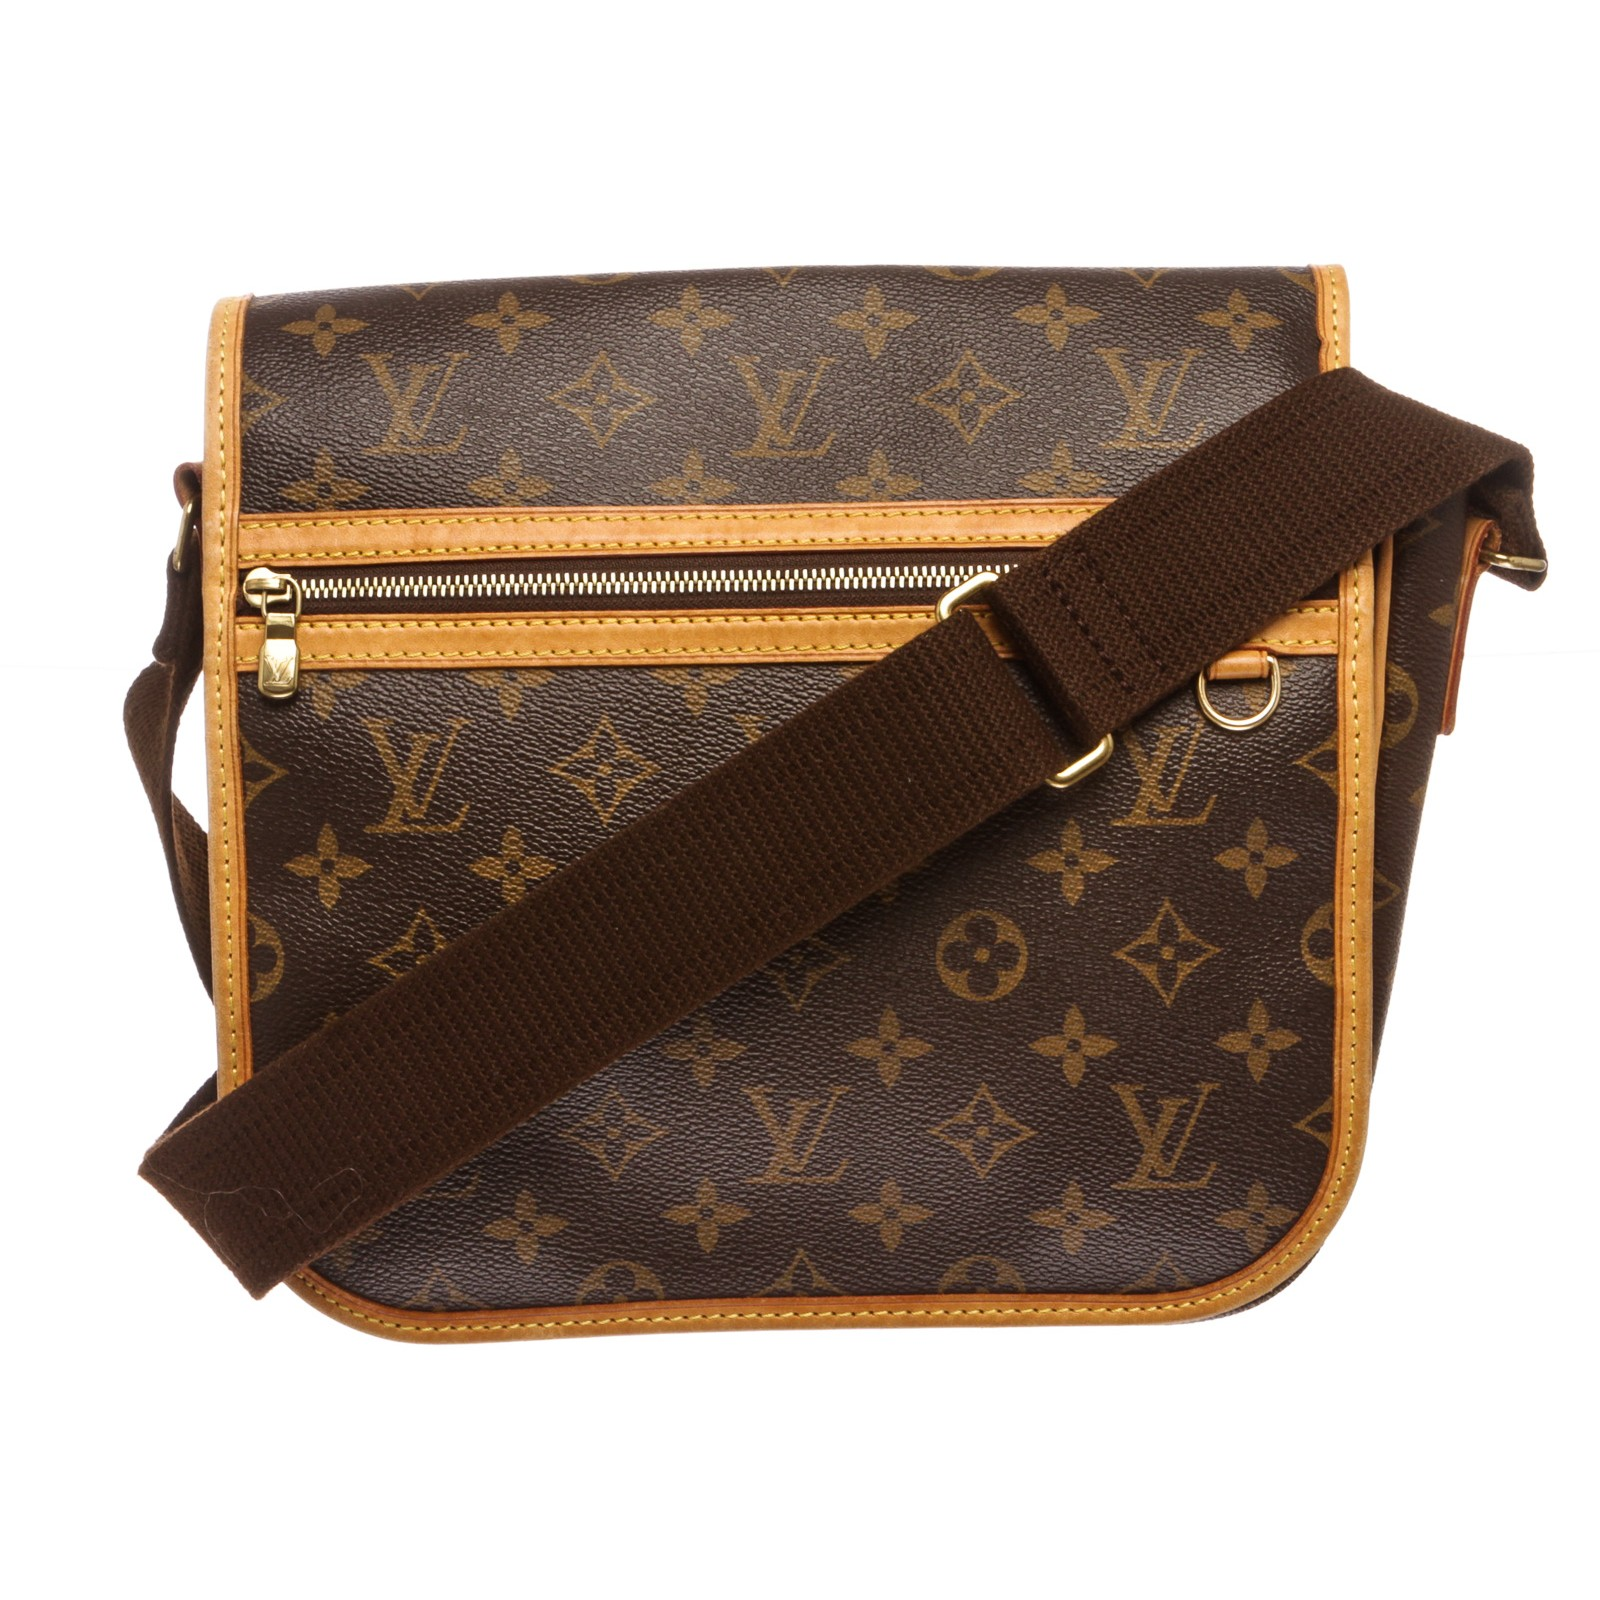 Shop for Louis Vuitton Monogram Canvas Leather Bosphore Messenger PM ... cf65926763f9b